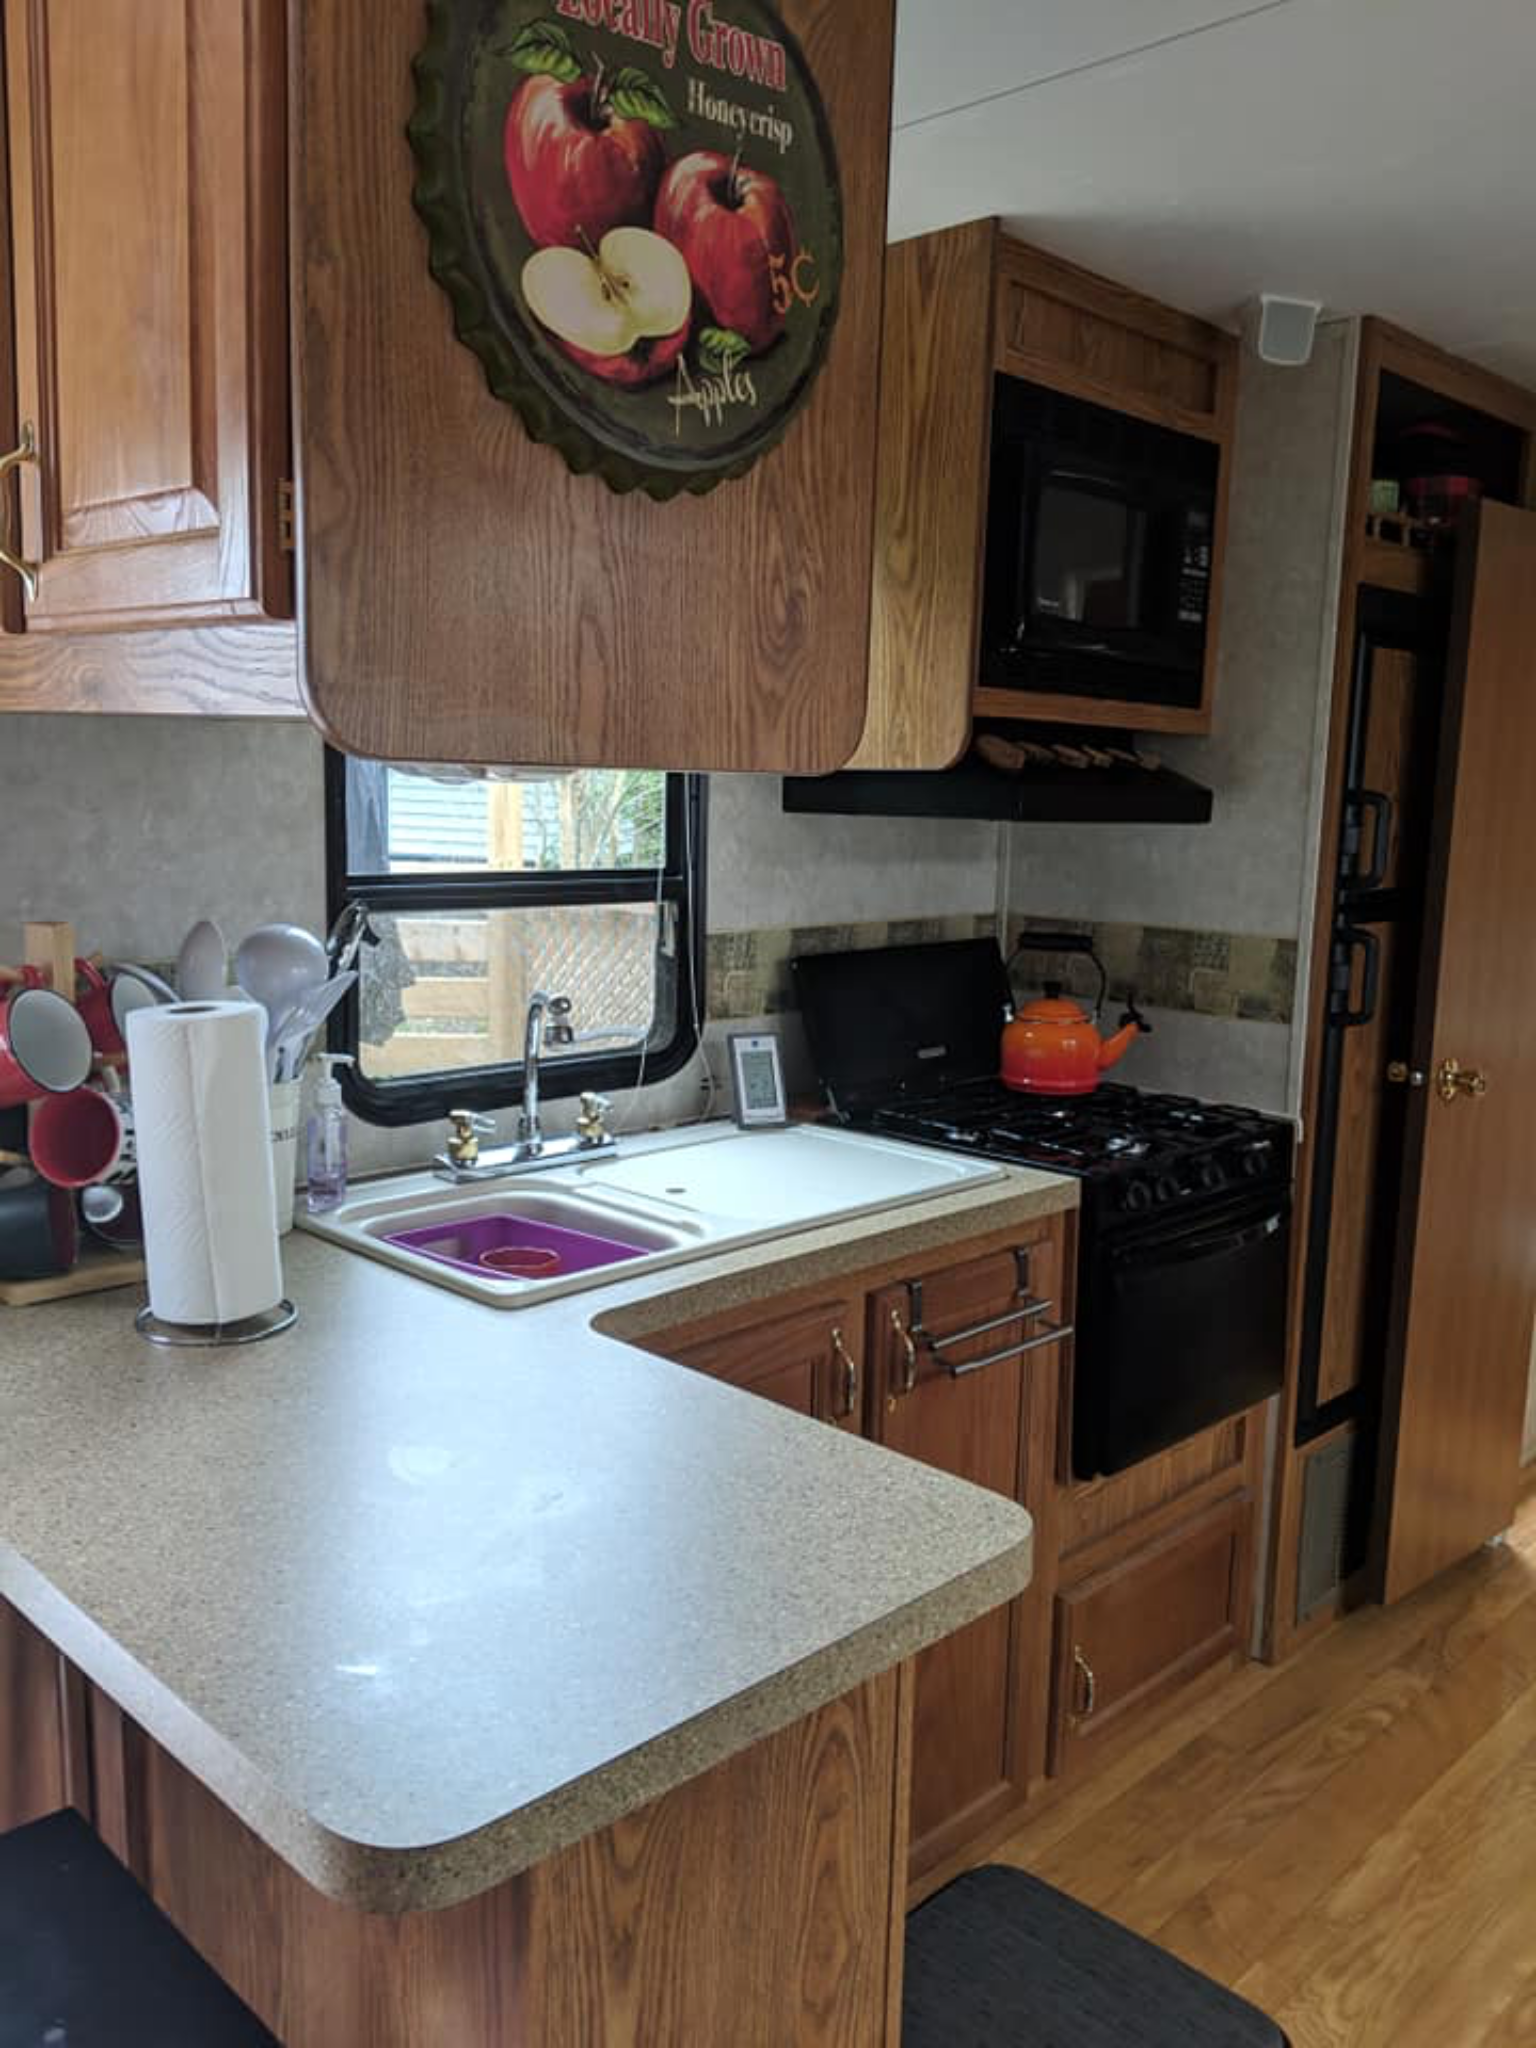 Pin By Kitchguy On Our Trailer Kitchen Cabinets Home Decor Decor